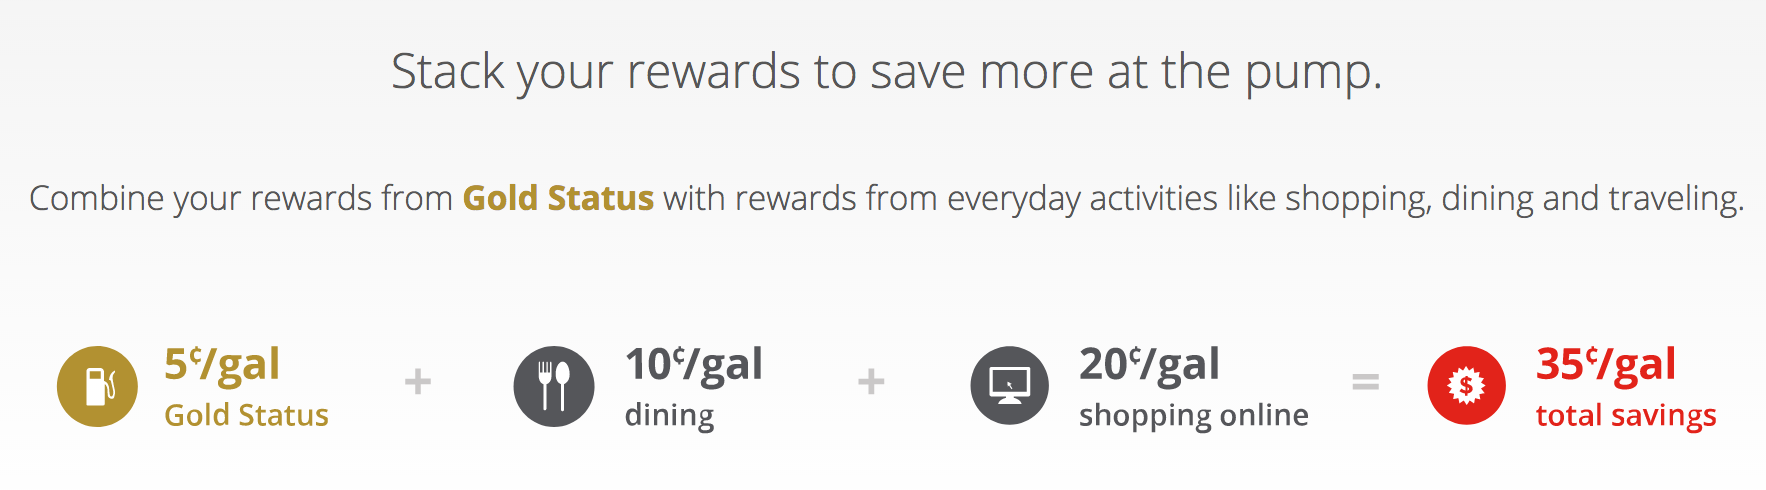 Fuel Rewards savings